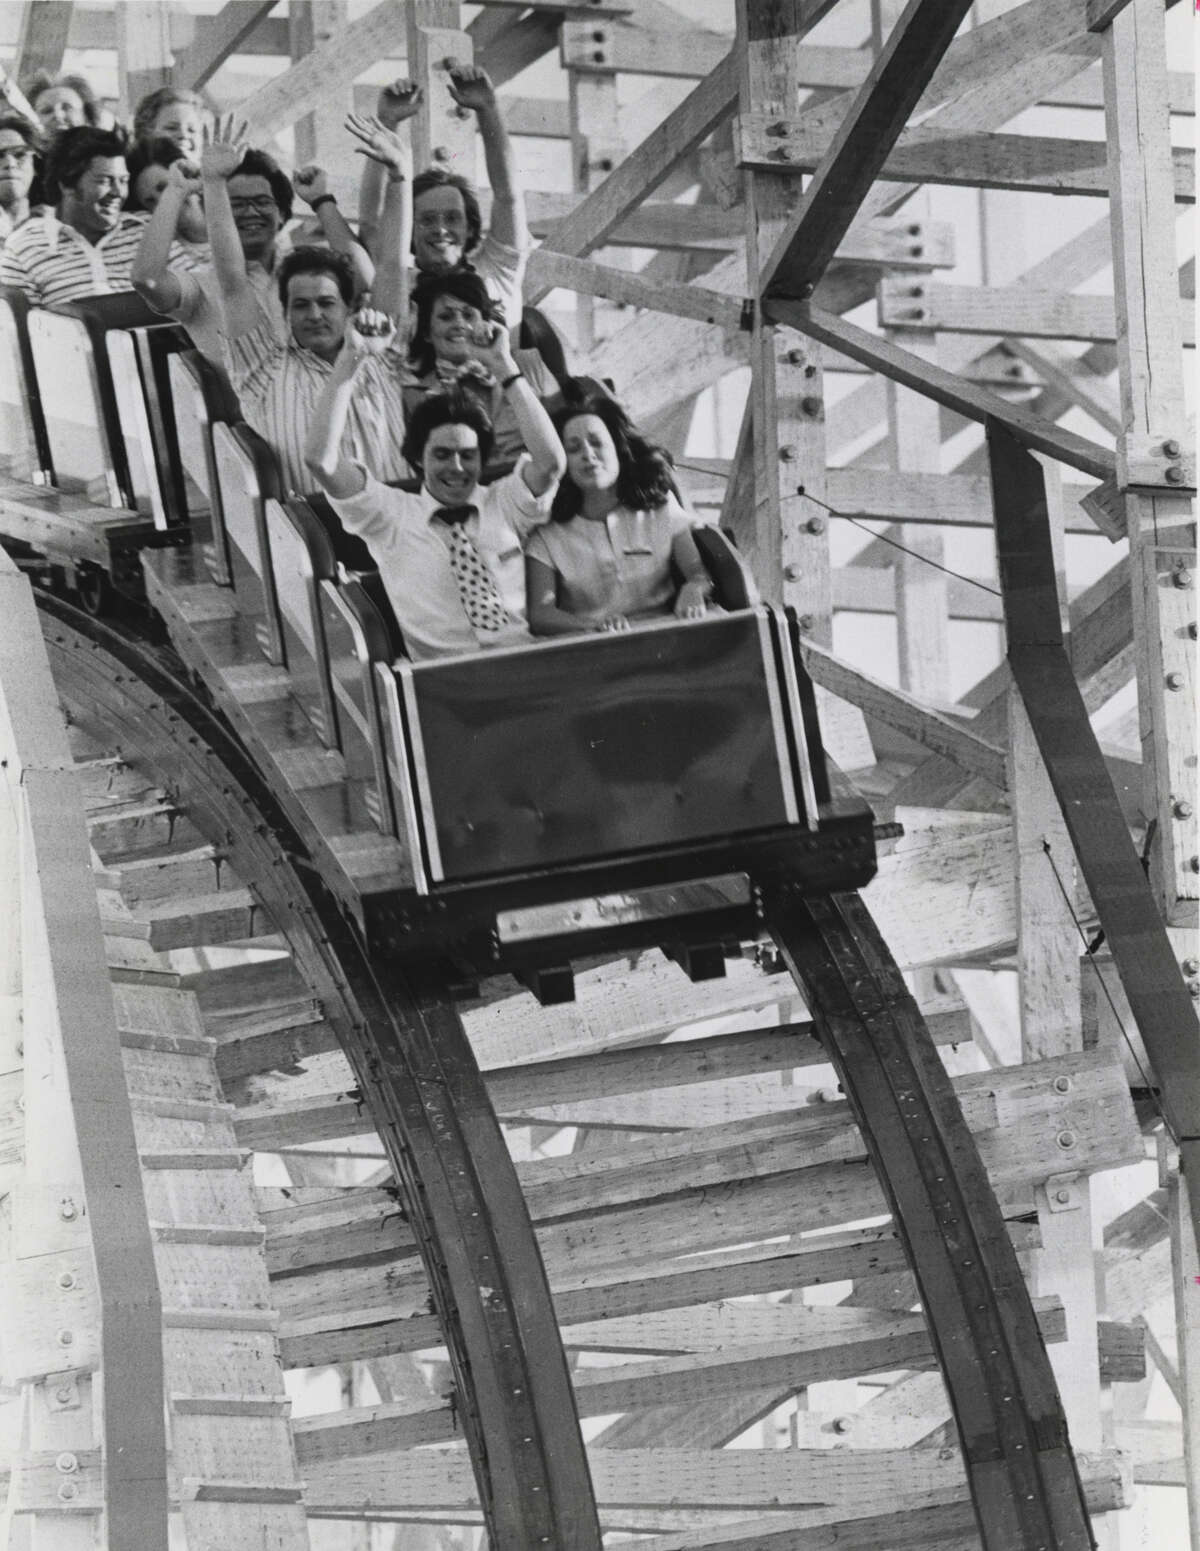 Riders on the Texas Cyclone, Astroworld's thriller roller coaster on June 22, 1976.